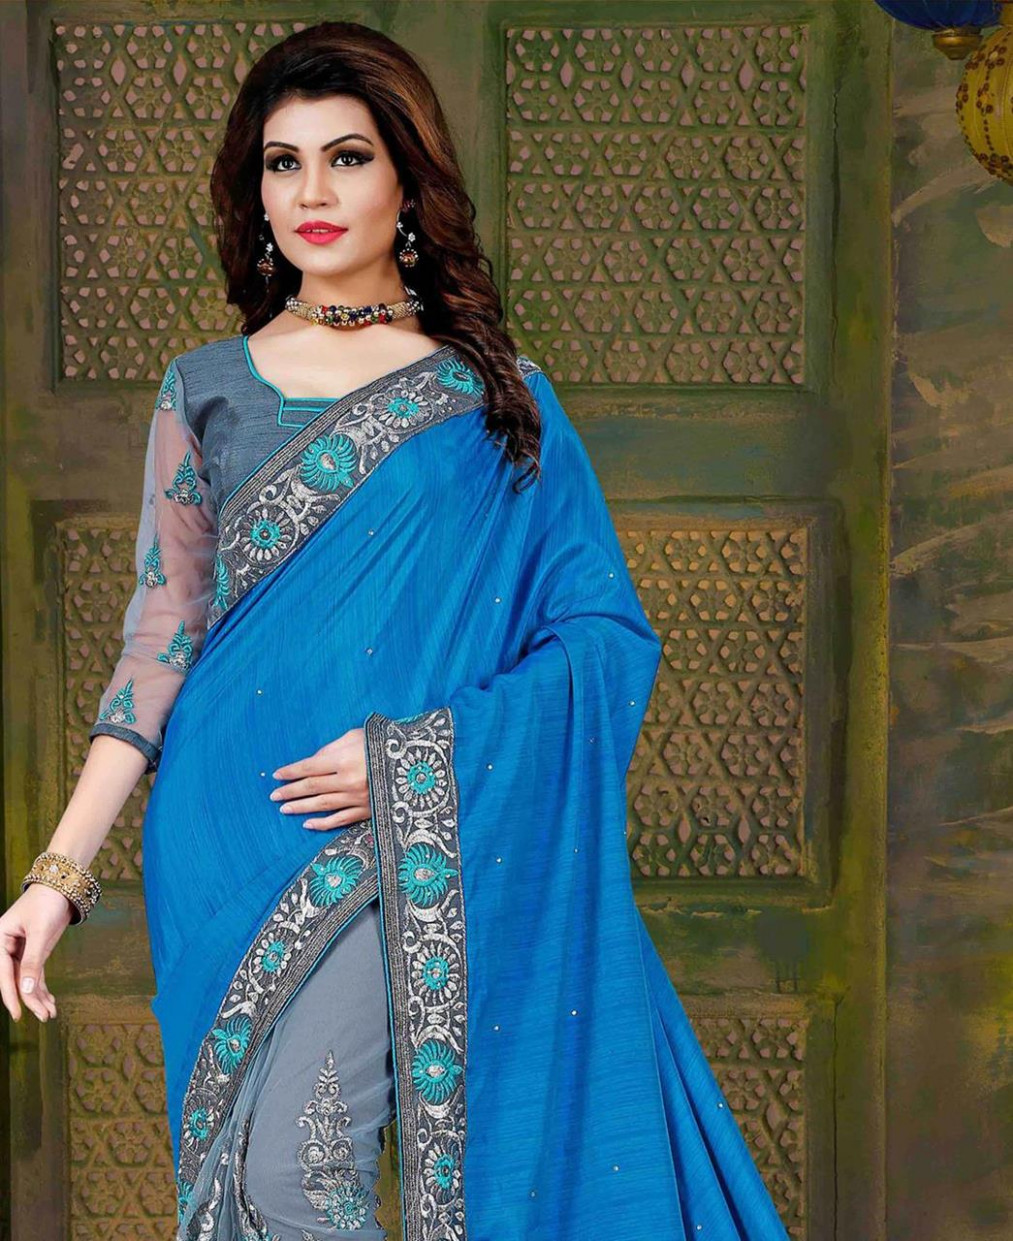 Buy Pretty Light Blue Casual Saree [98013] at 56.76 (FJD)